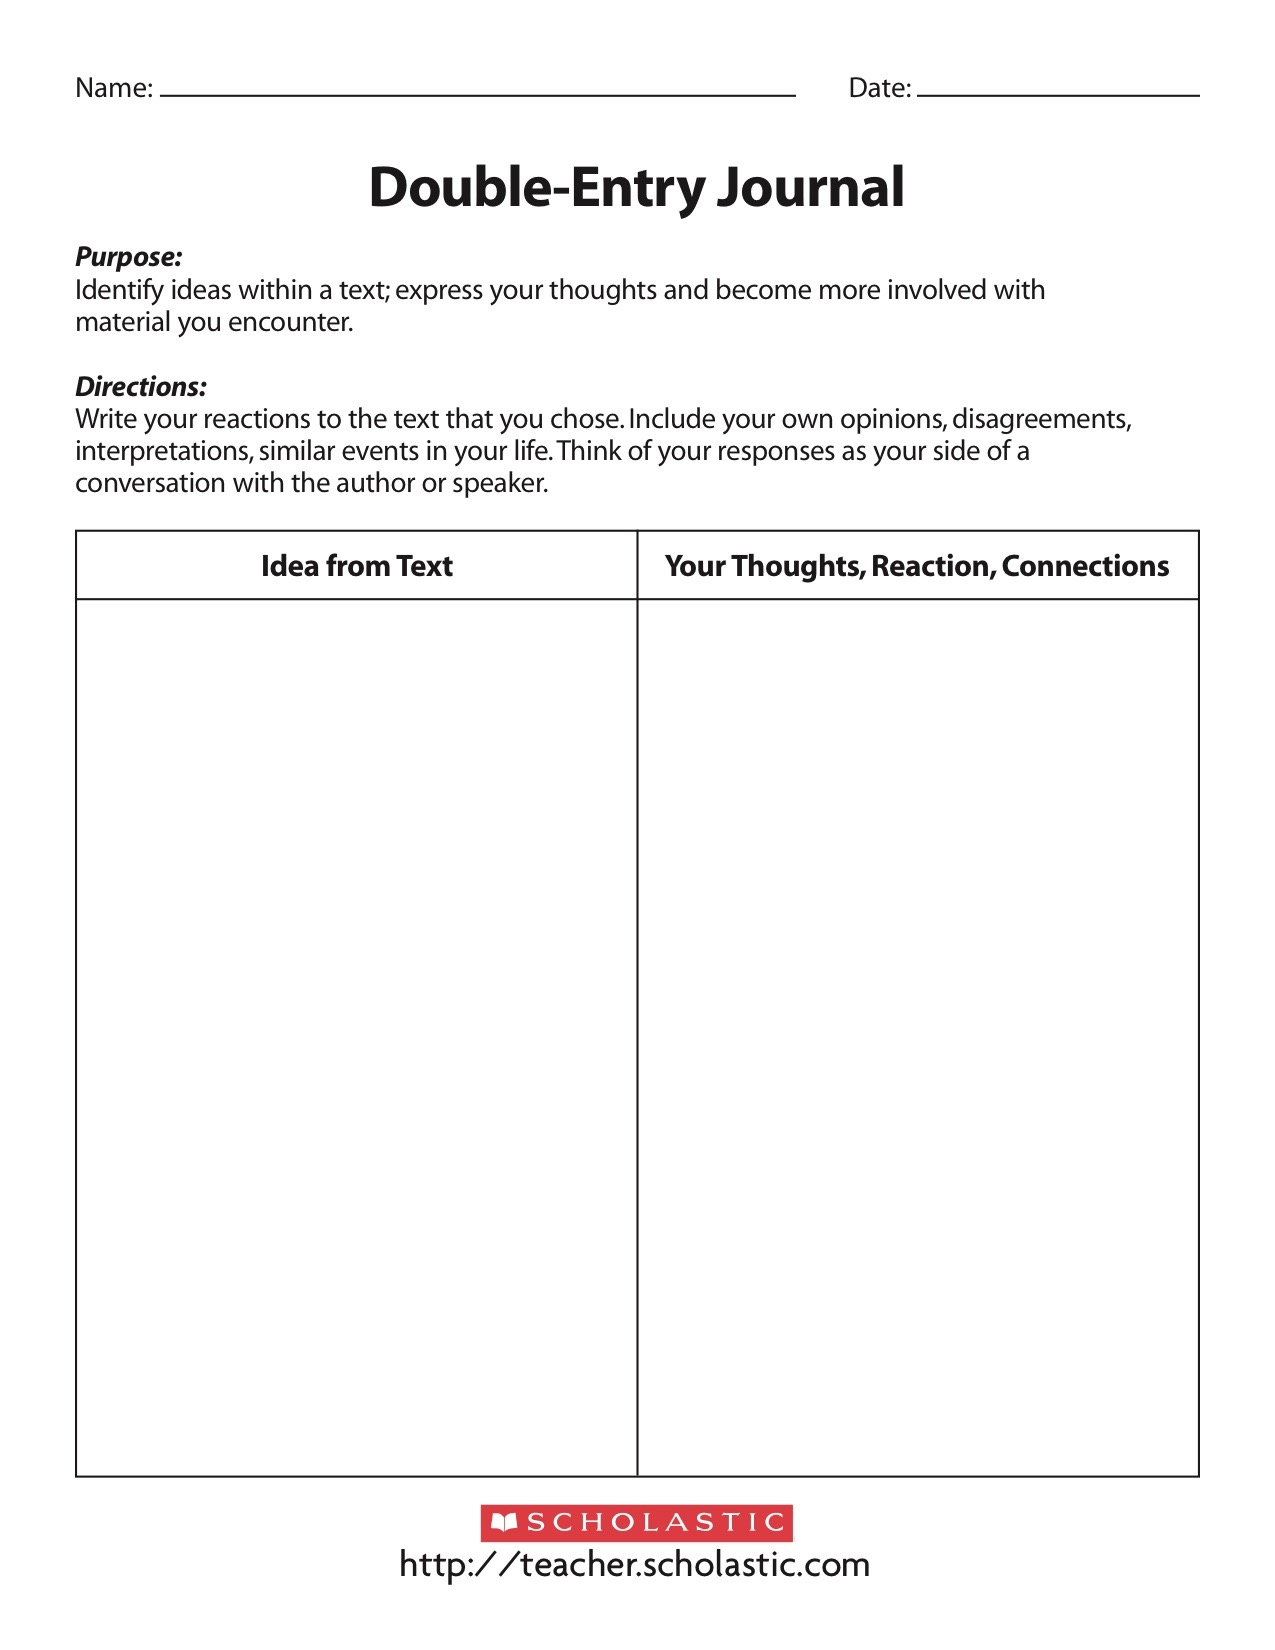 Double entry journal template for word gallery for Double sided journal entry template